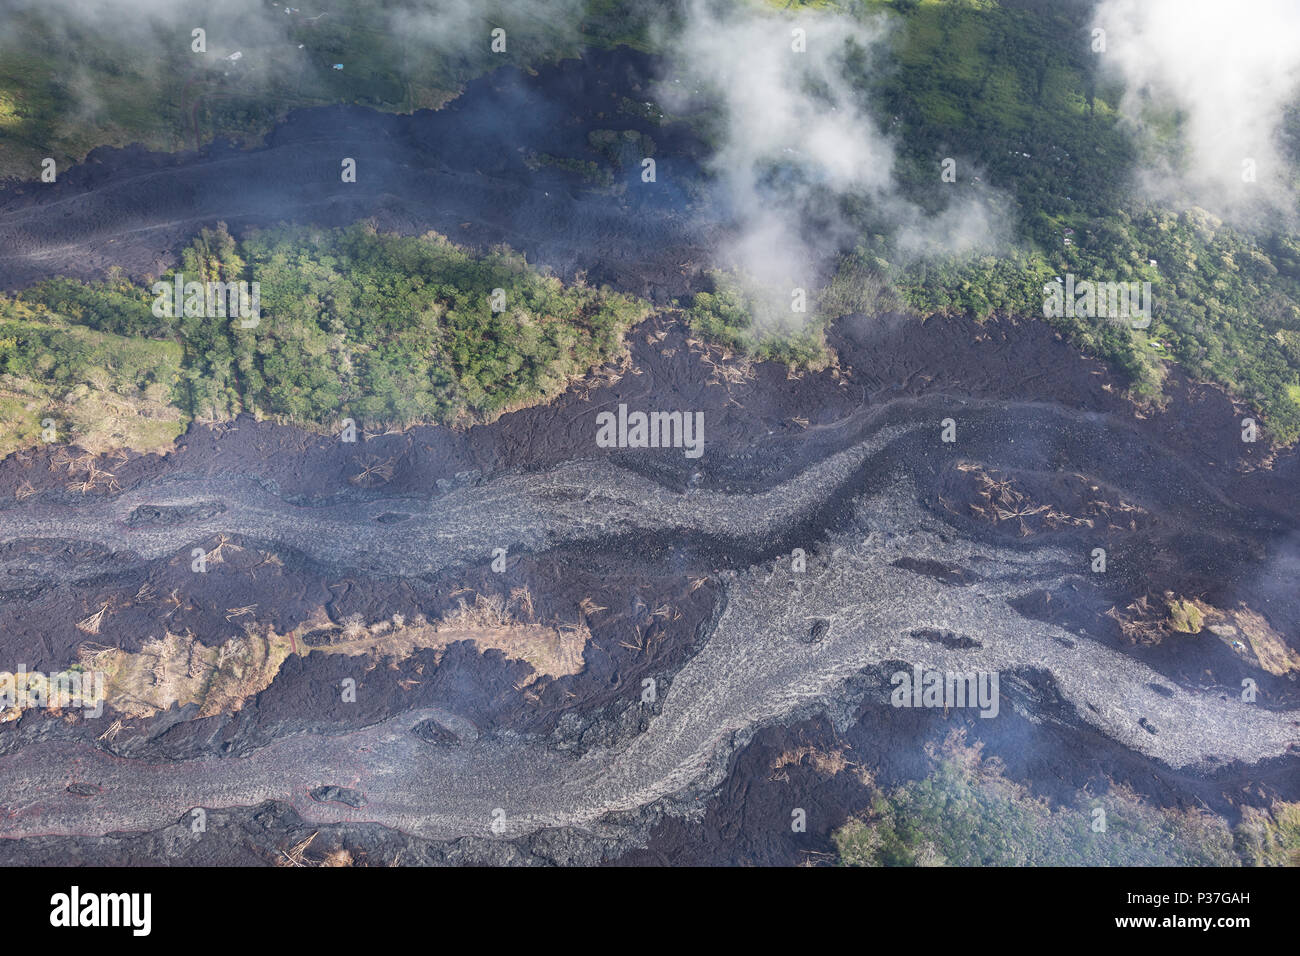 Aerial view of lava flows from the eruption of volcano Kilauea on Hawaii, May 2018 - Stock Image